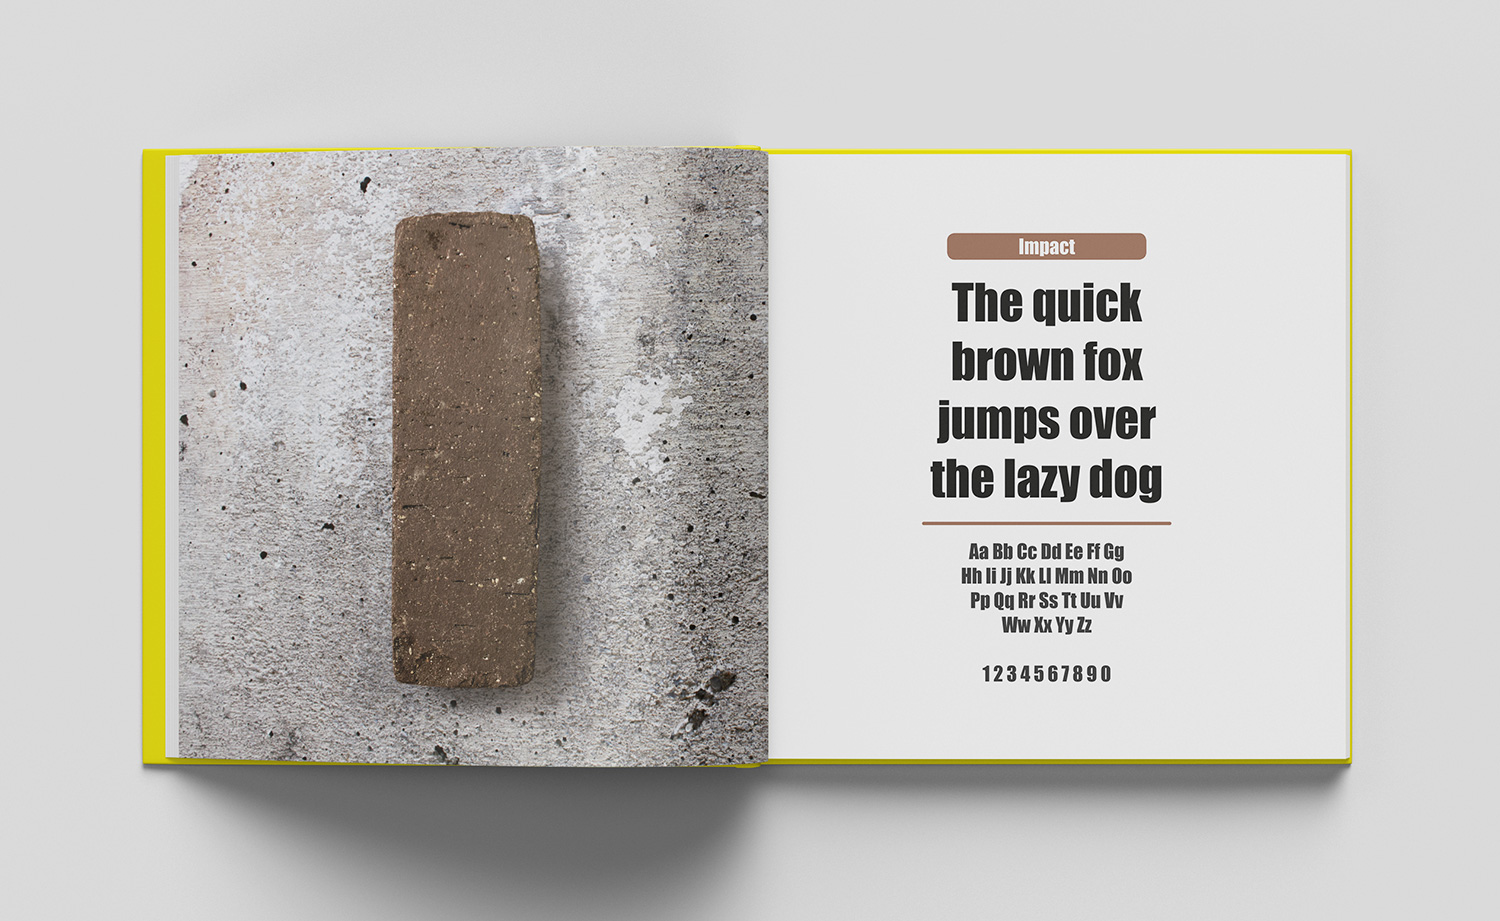 ABC of typography book spread letter I made from a long brick on a brick surface